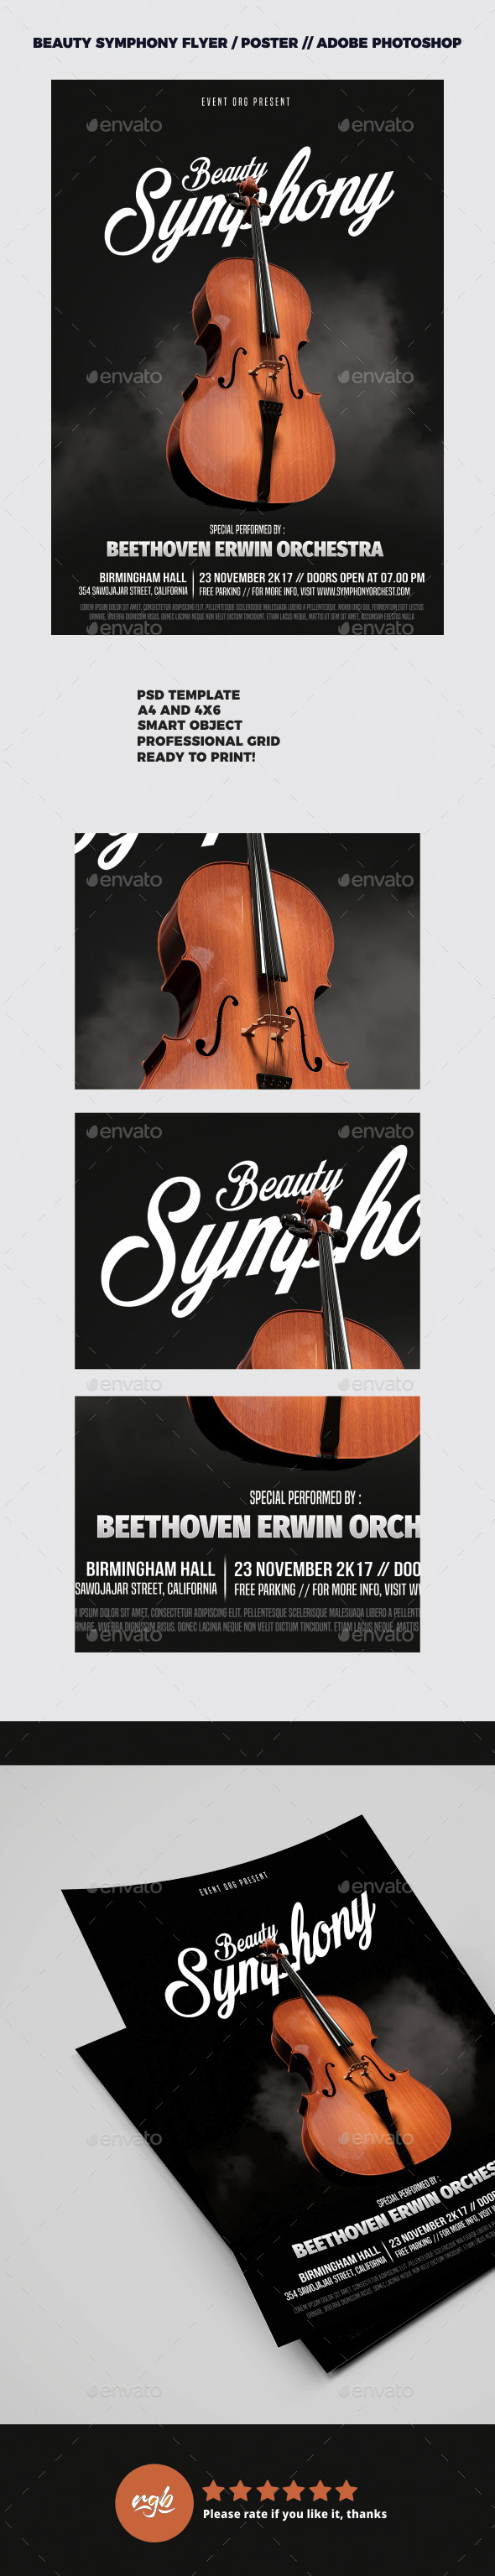 Symphony Music Flyer / Poster Template - Concerts Events